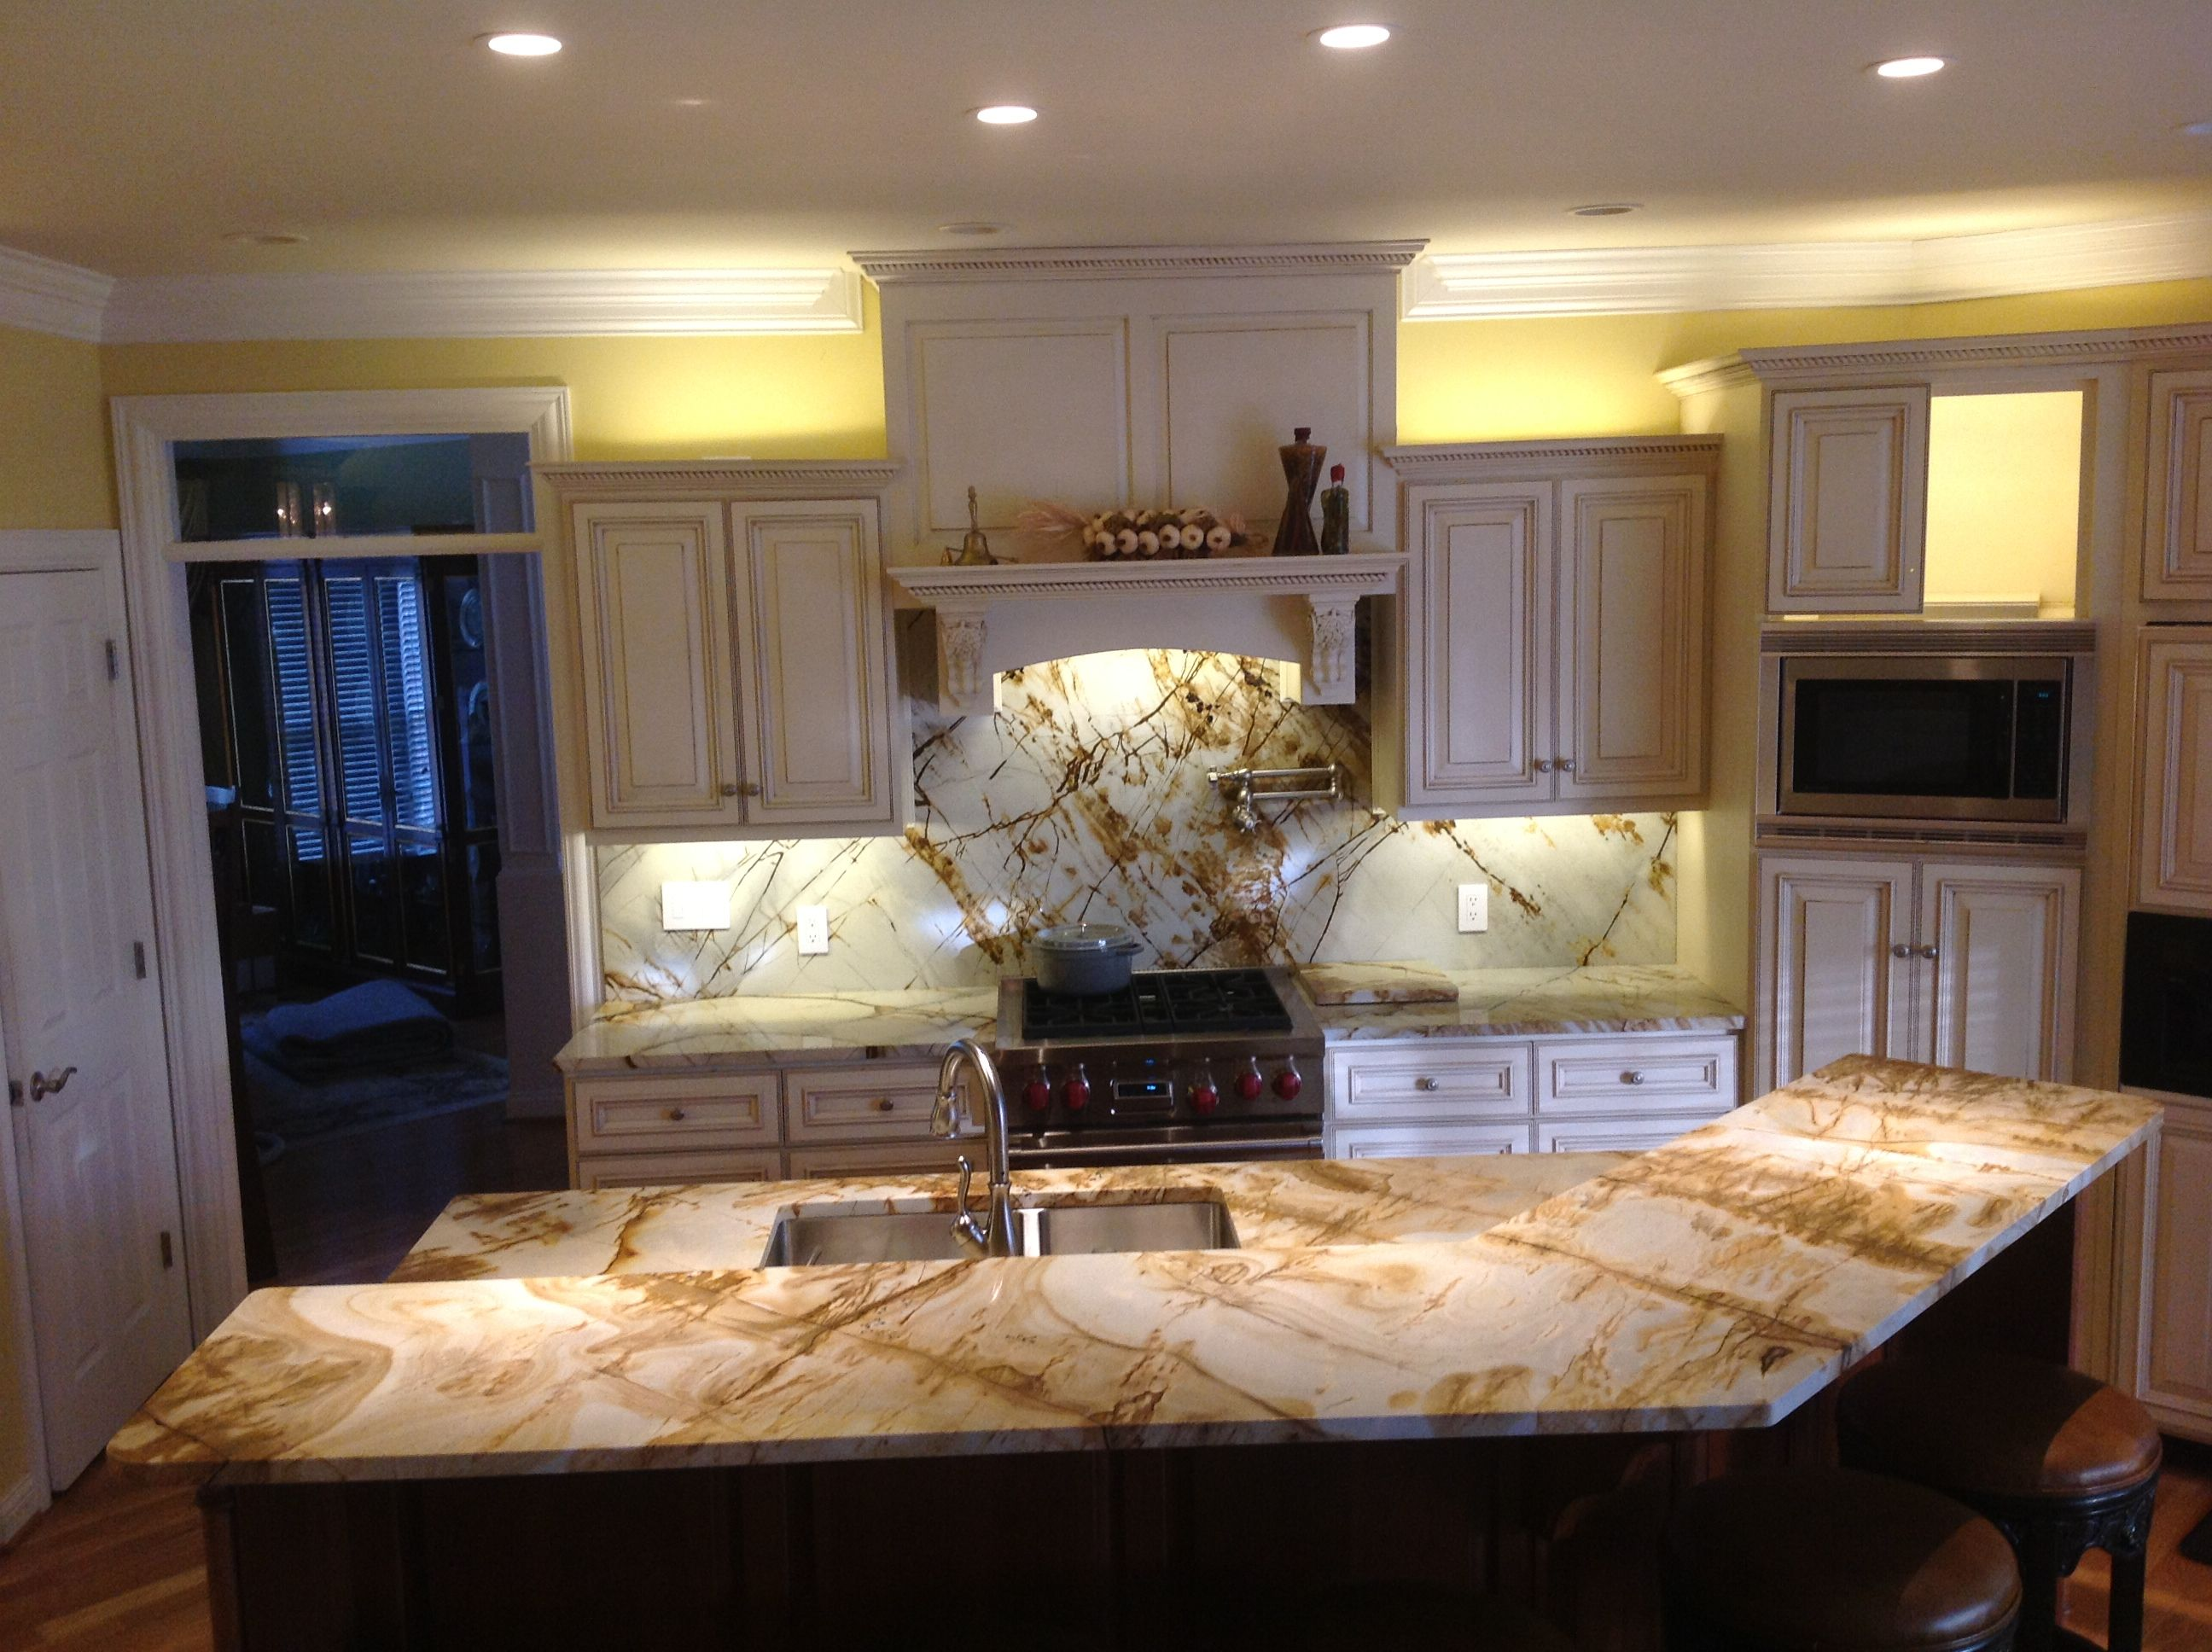 Elegant Danville Kitchen Remodel With Roma Imperial Countertops